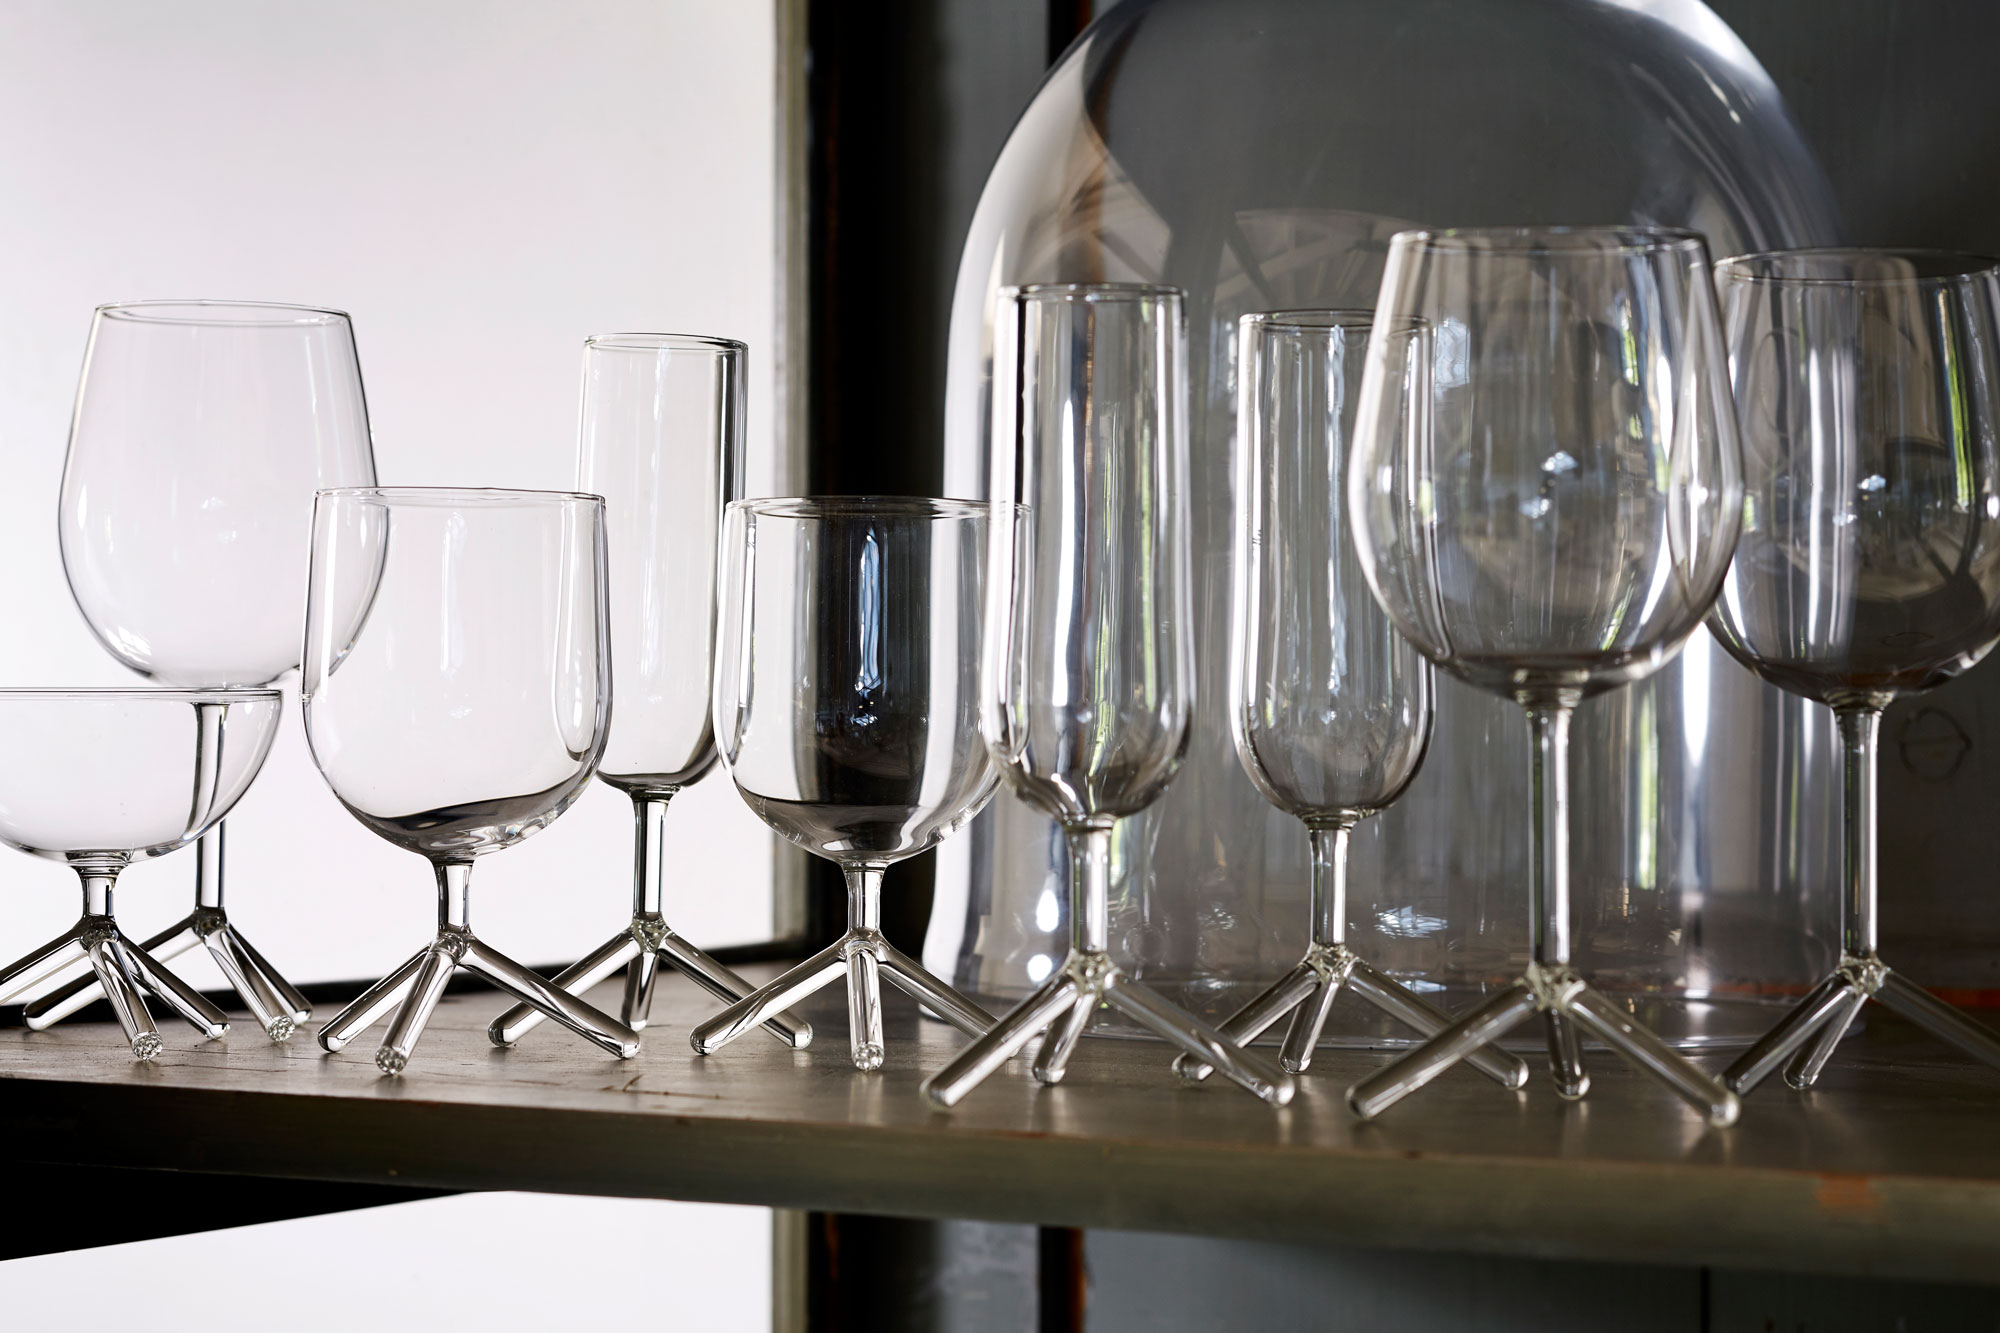 maarten_baptist_joine_tripod_wine_glasses_THmanufacture_louise_52701_web